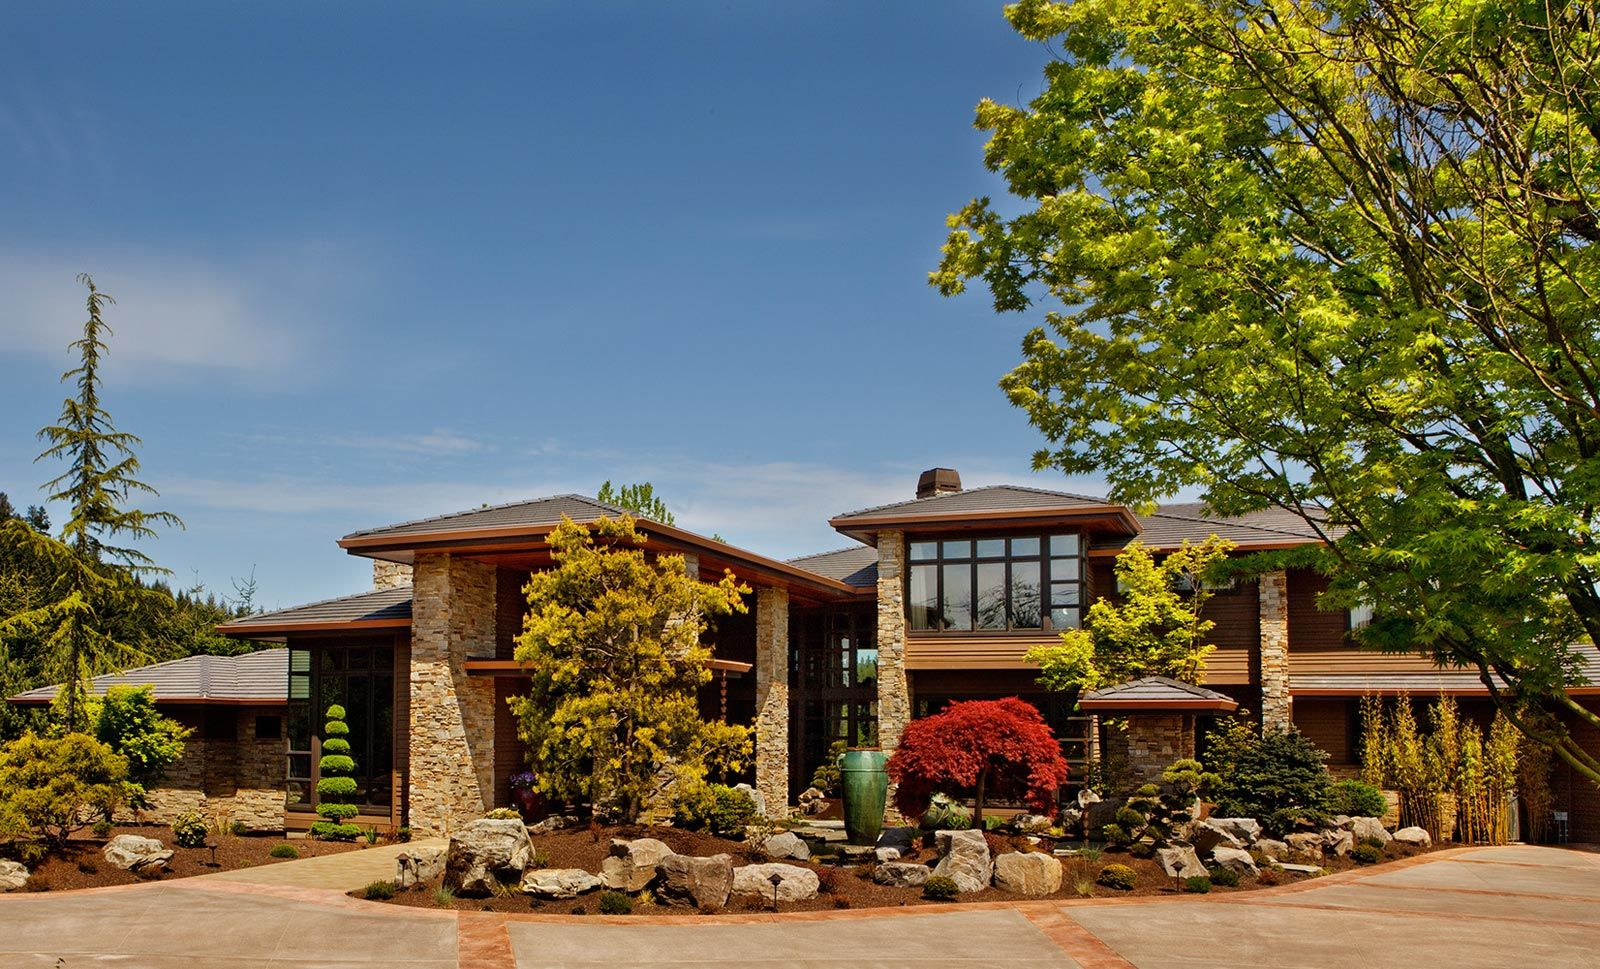 Superieur Happy Valley Residence In Happy Valley, Ore. Designed By Michael Barclay Of Barclay  Home